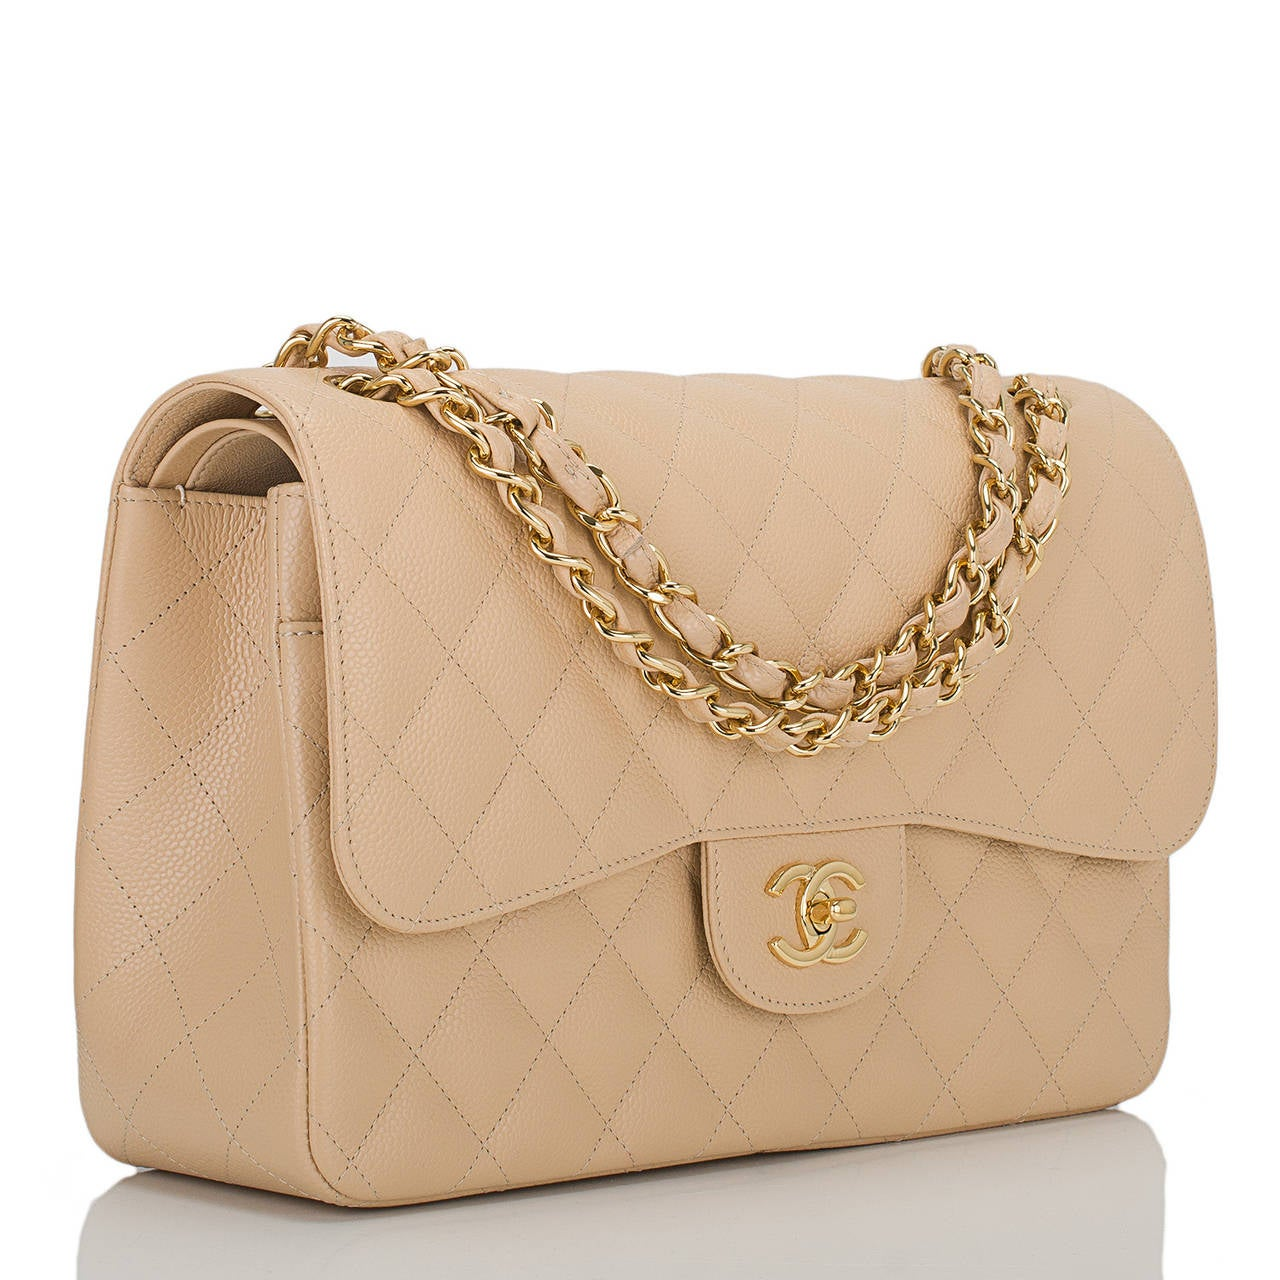 chanel jumbo flap bag beige wwwpixsharkcom images